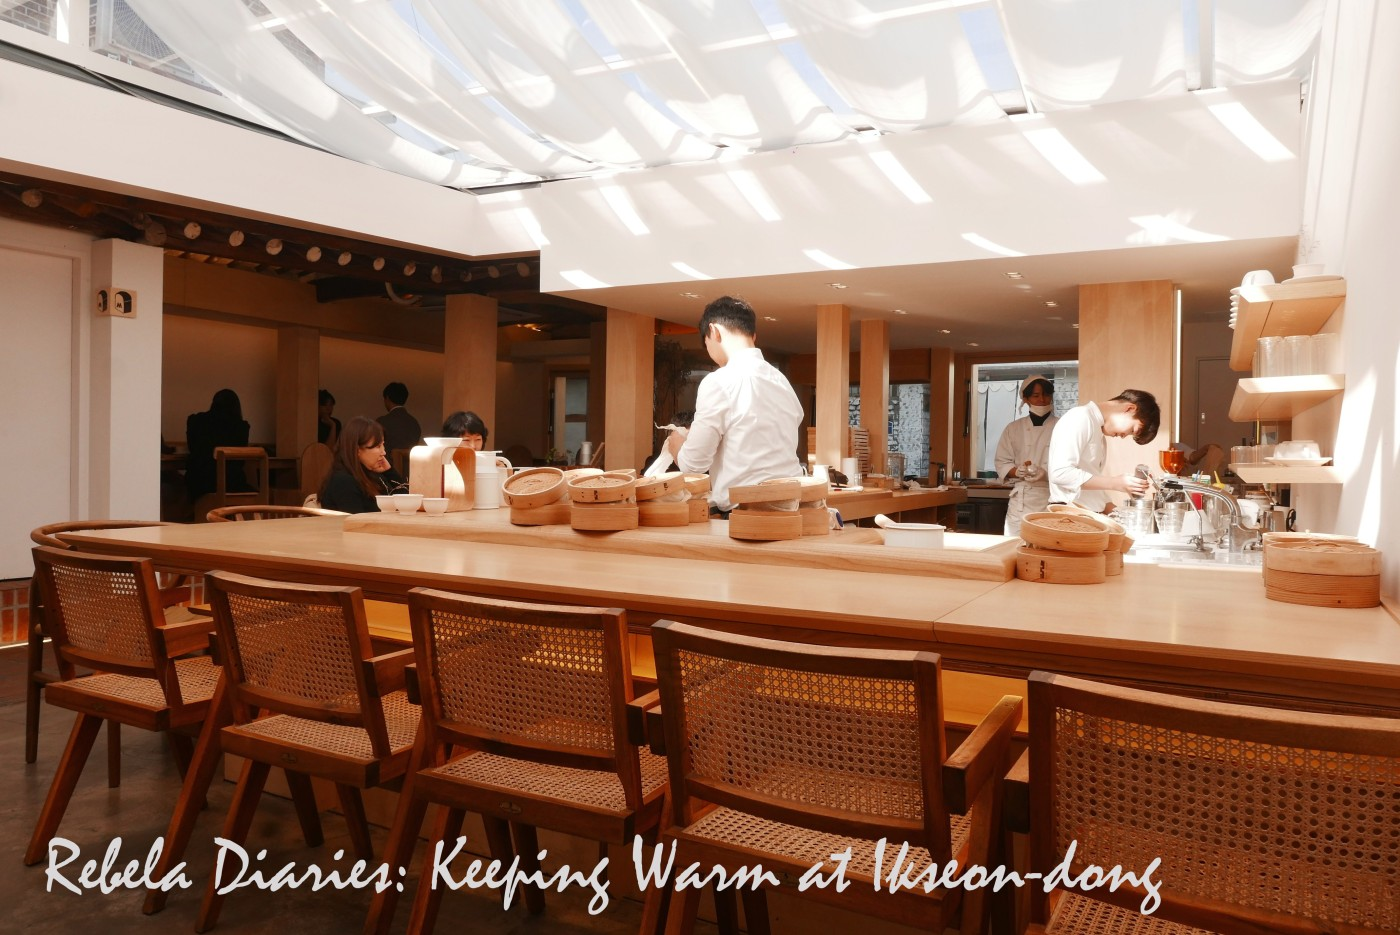 Ikseondong: Seoul's Hanok Cafe District